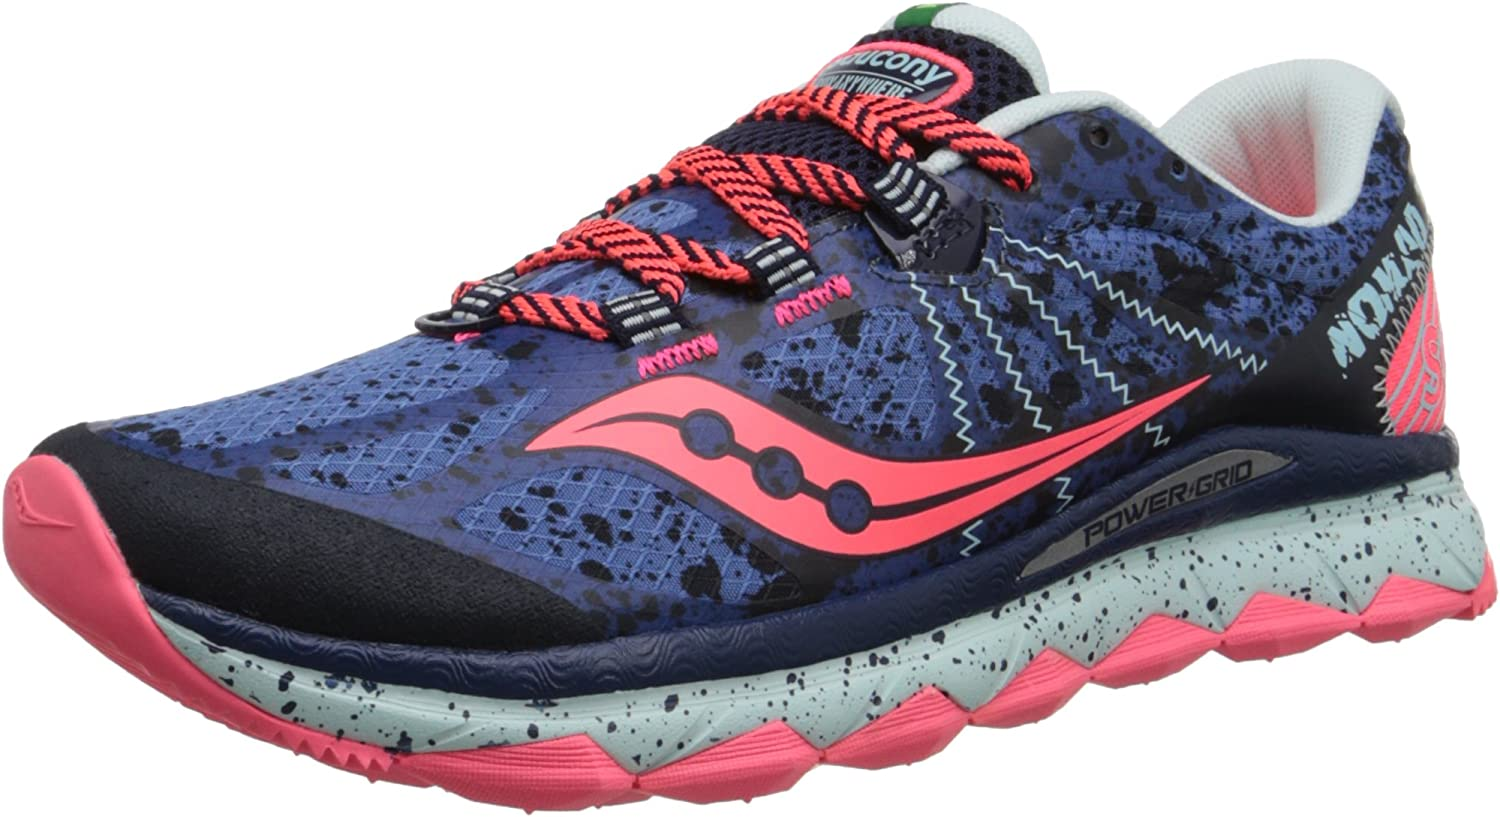 Saucony Women's Nomad TR Road Running shoes